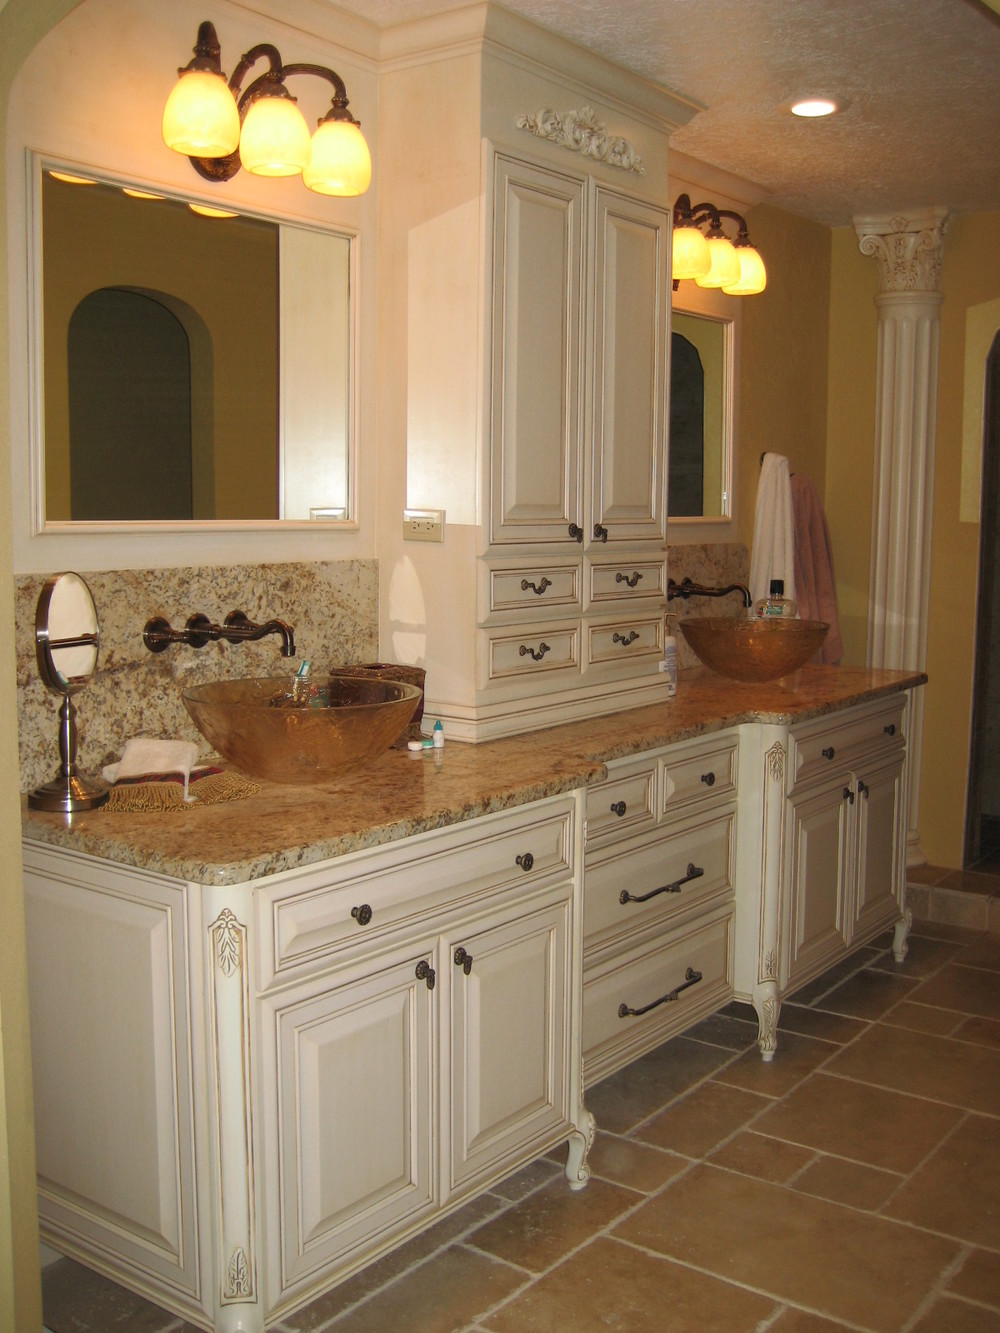 Scott's Bathrooms & Bedroom 001.jpg